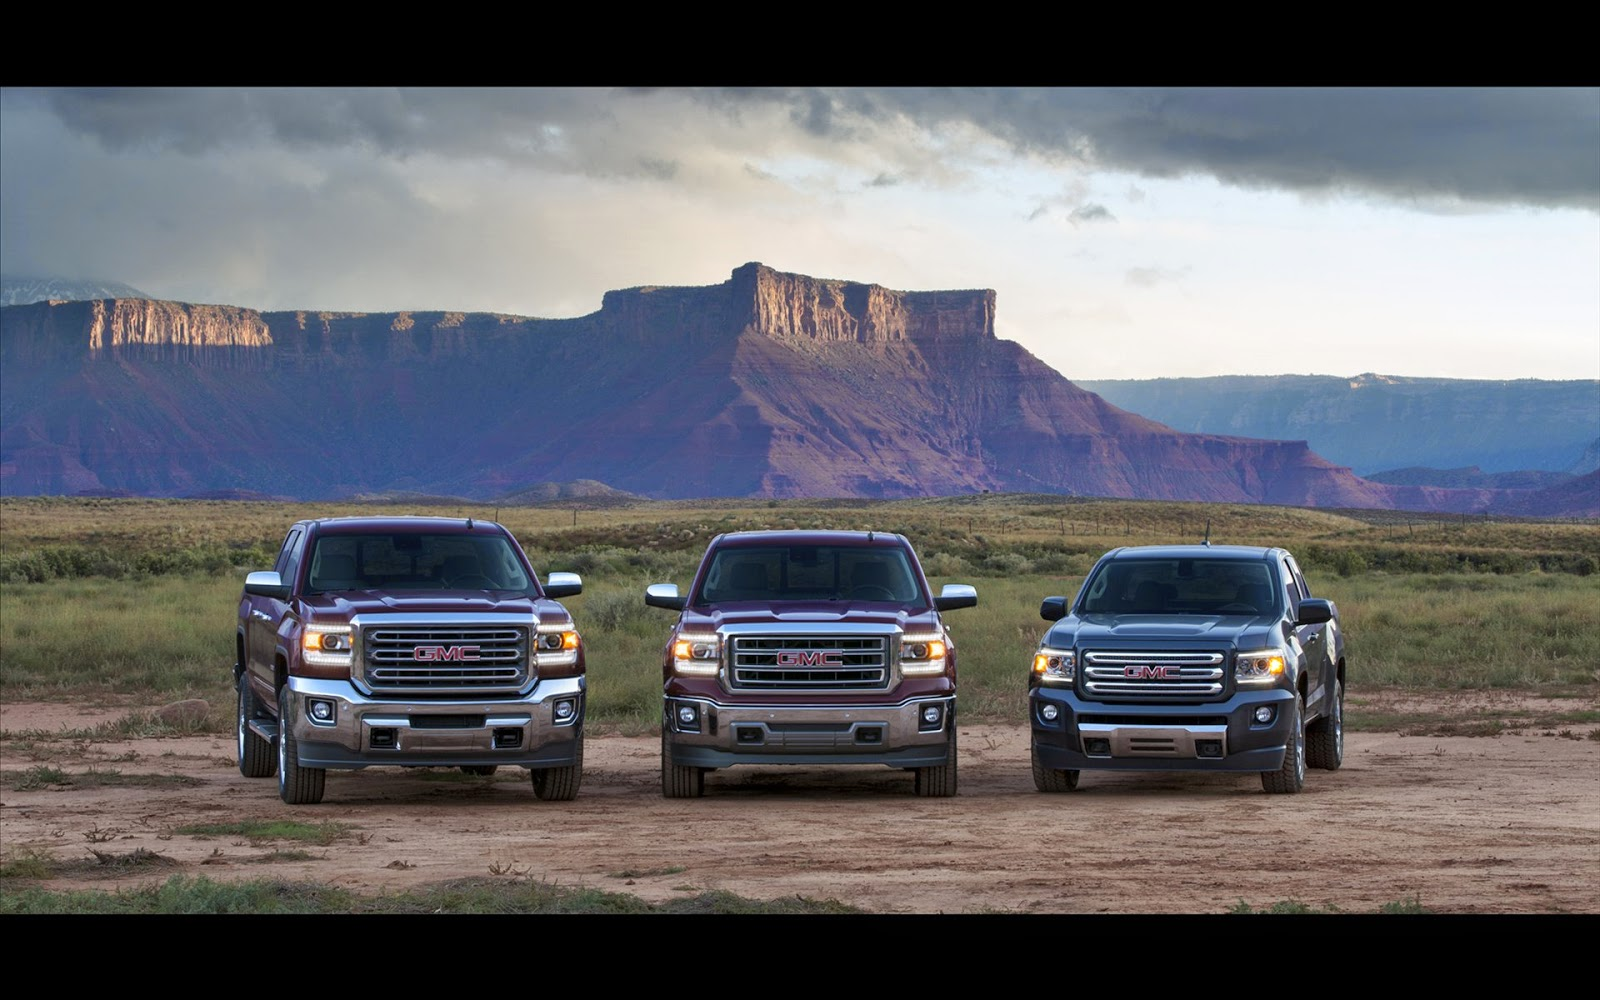 2015 GMC Canyon, 2014 GMC Sierra, 2015 GMC 3500HD, Trucks